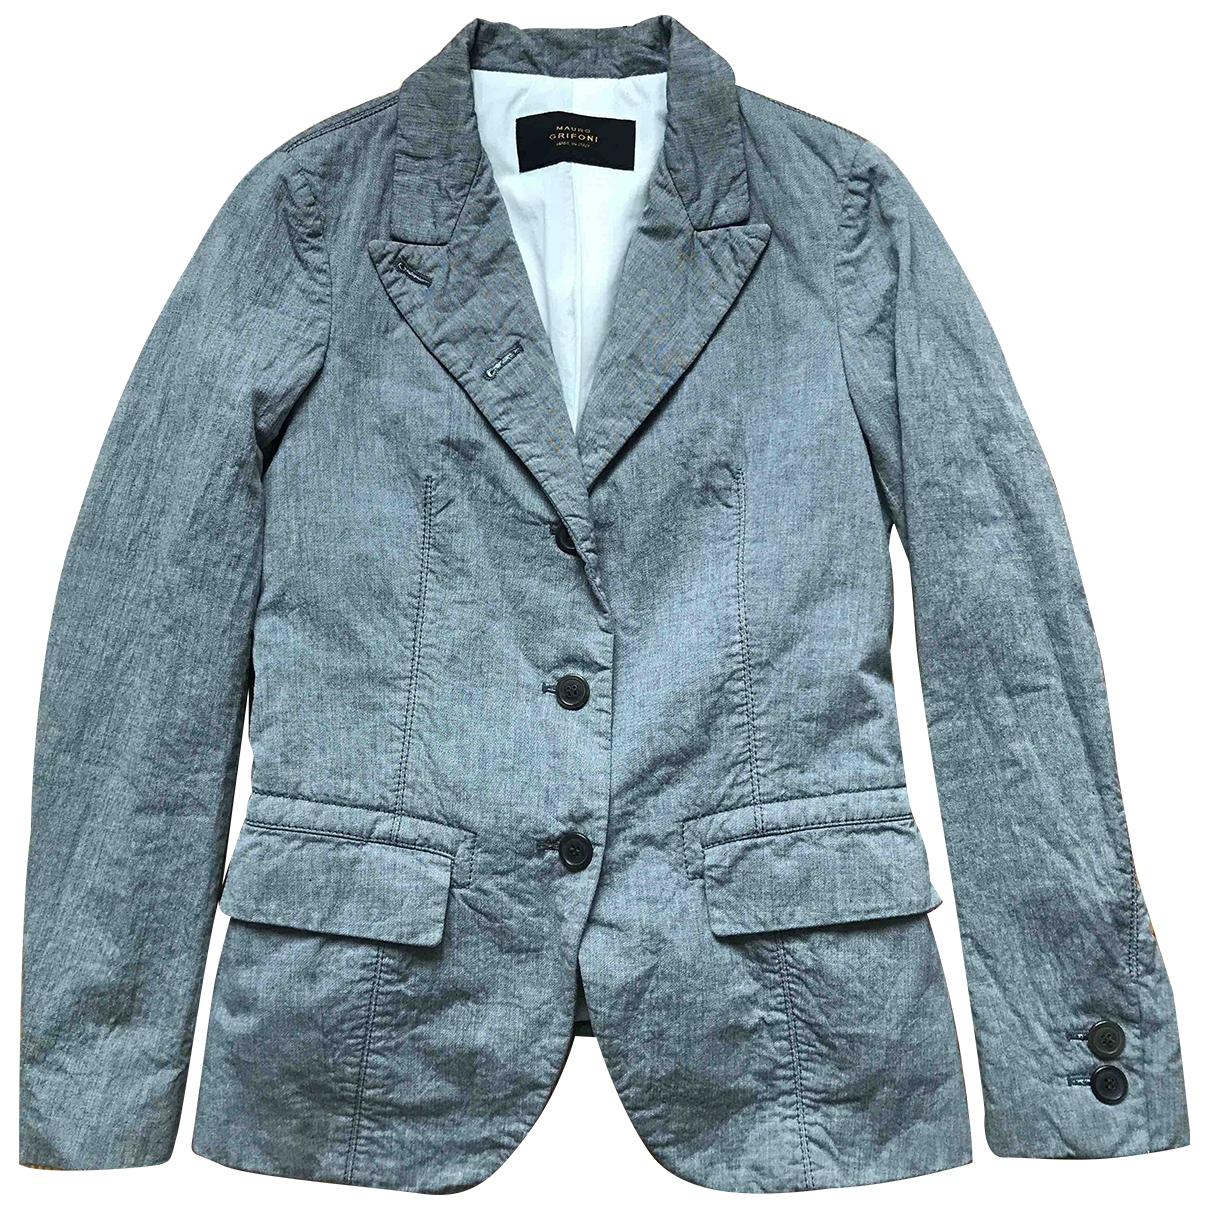 Mauro Grifoni \N Grey Cotton jacket for Women 40 IT